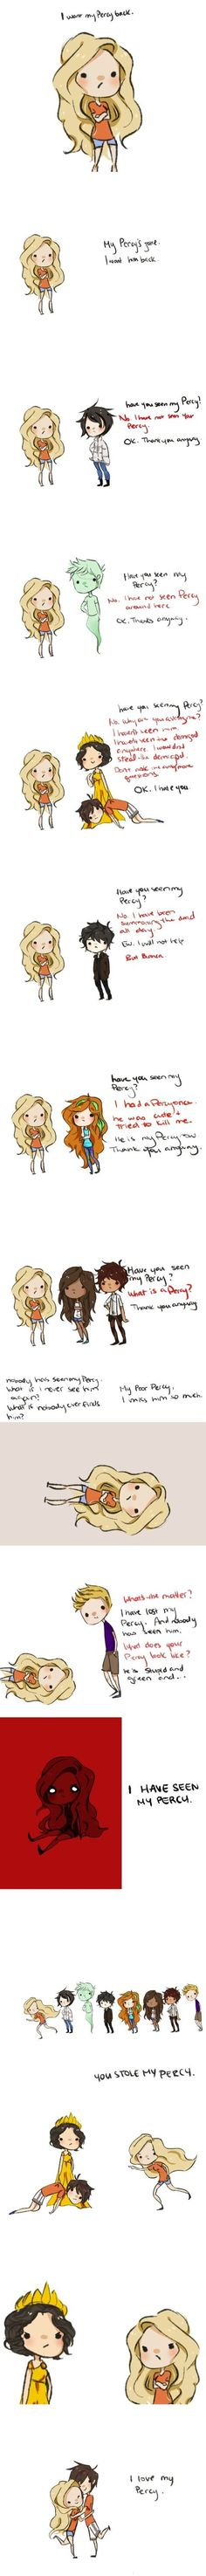 Annabeth gets what Annabeth wants.... in this case its her Percy